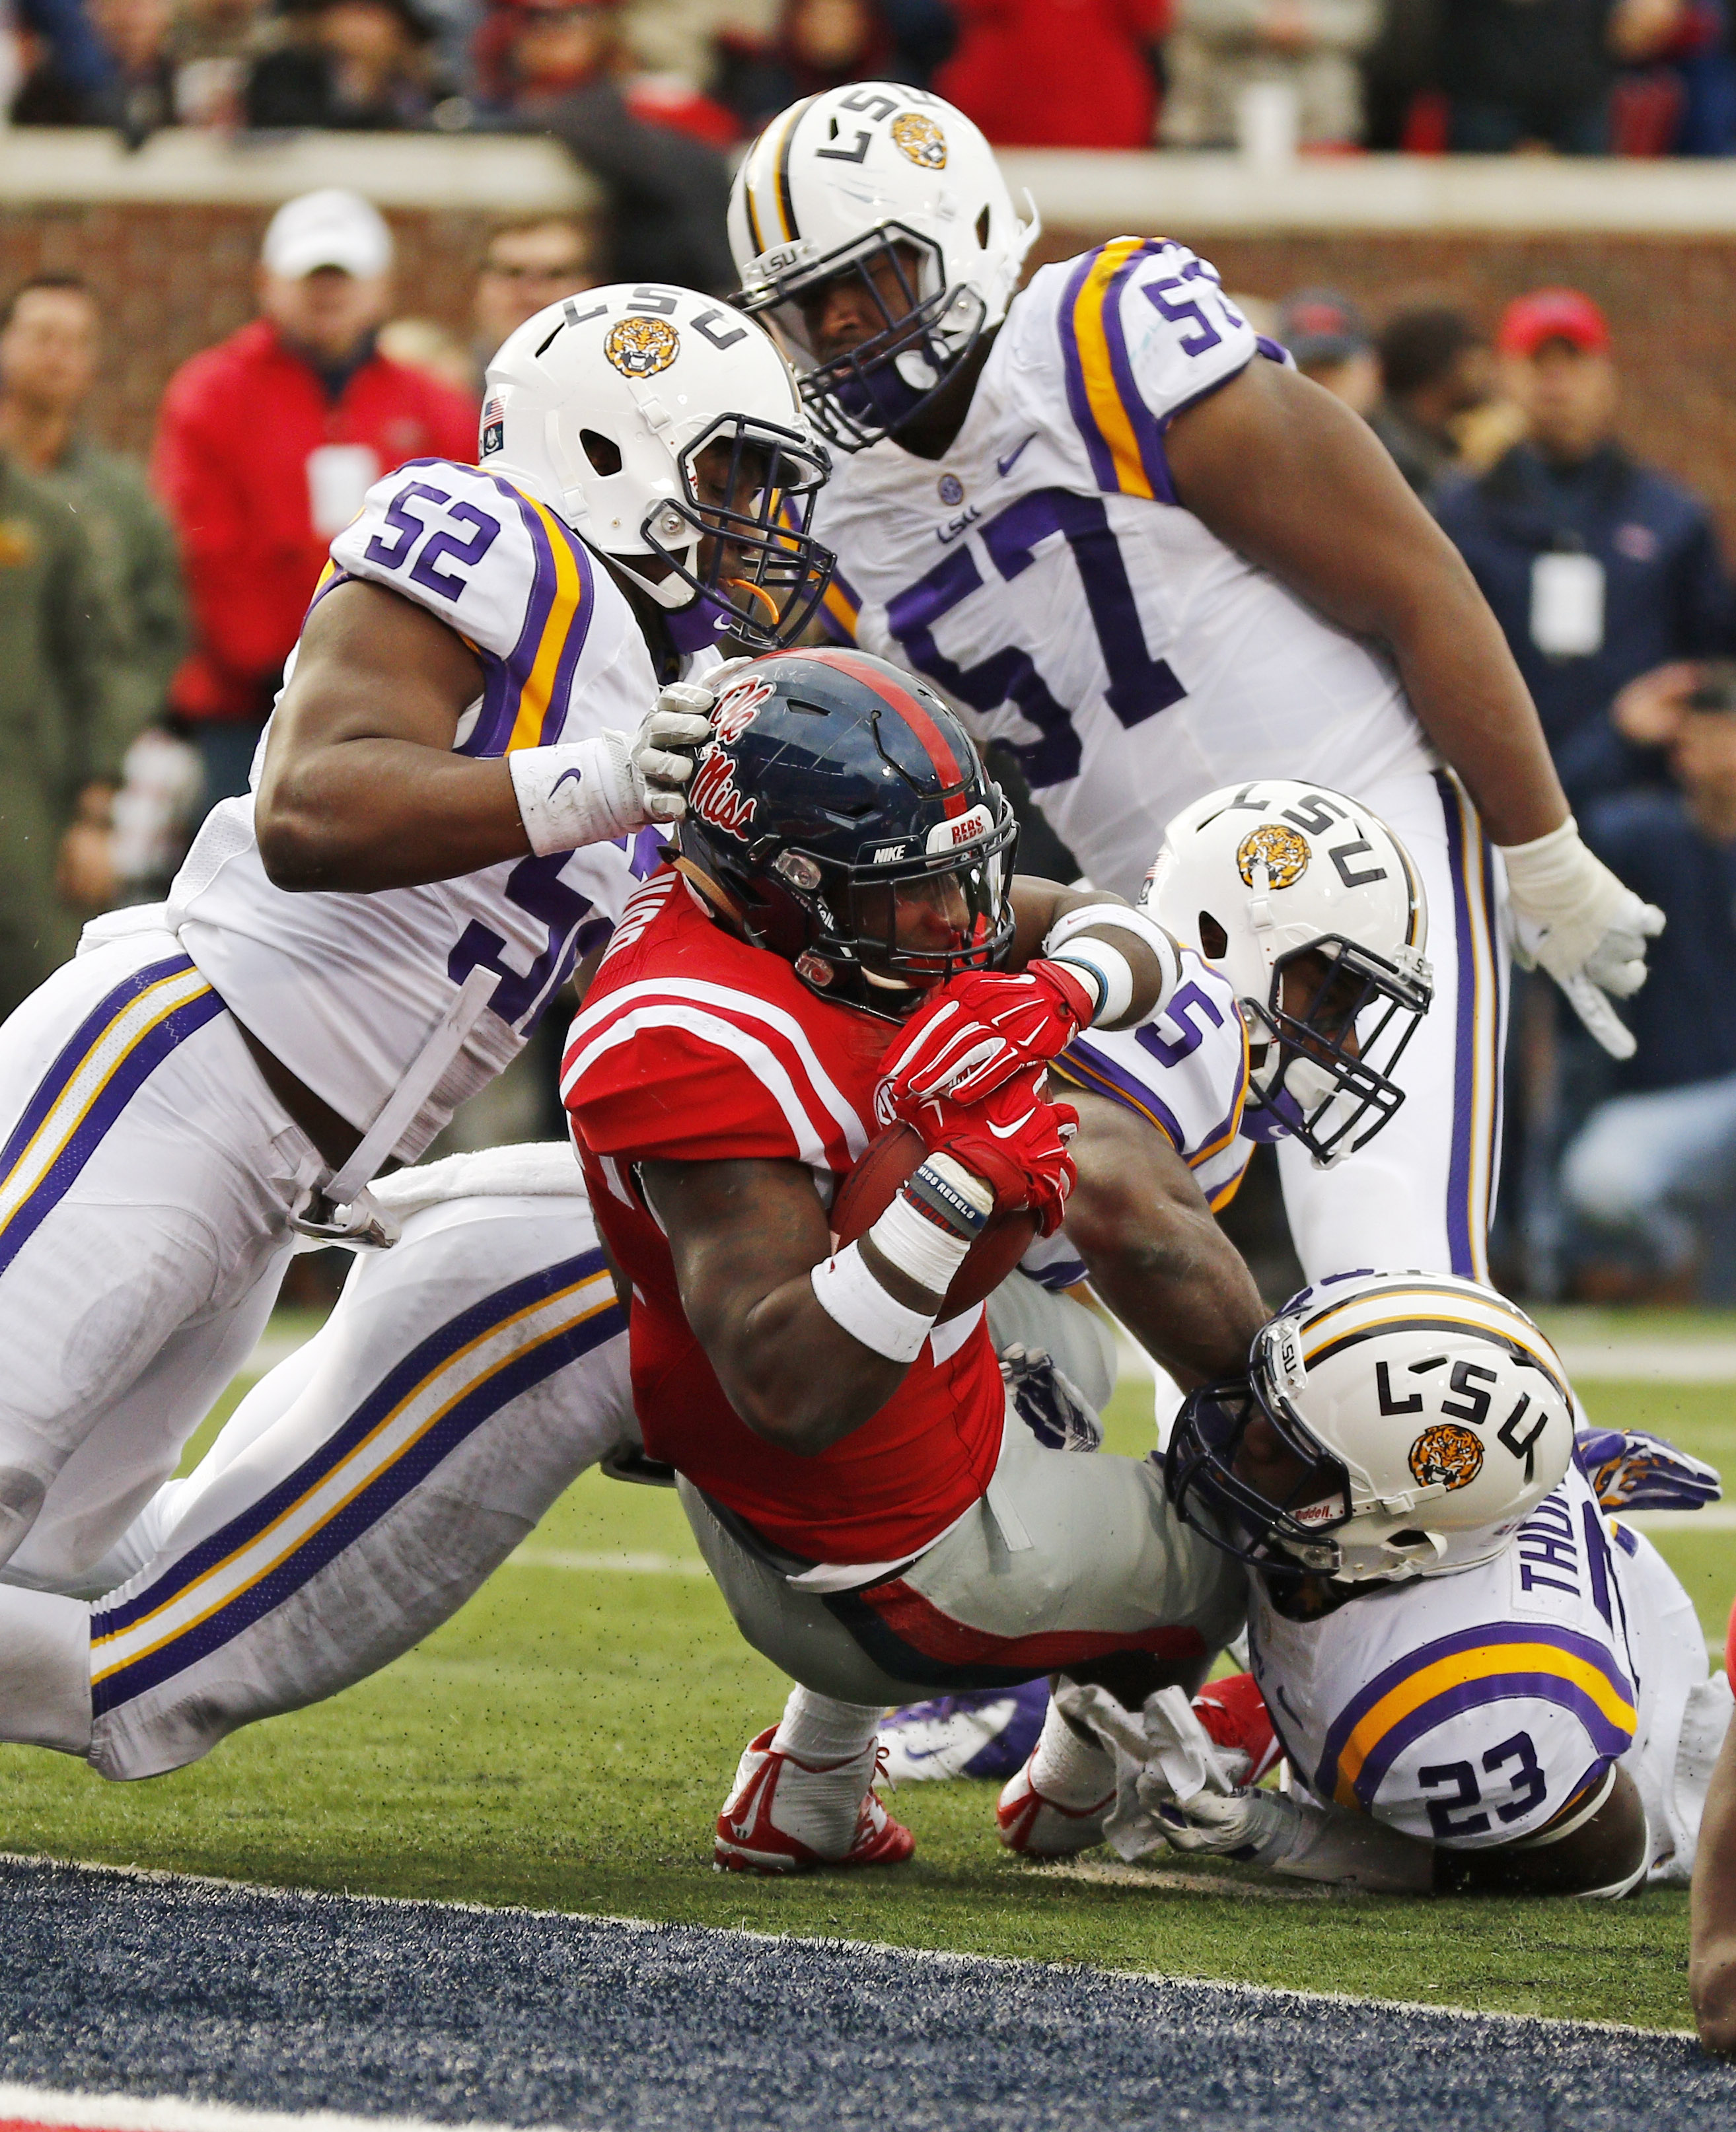 Mississippi running back Jaylen Walton (6) stretches past LSU linebacker Kendell Beckwith (52) for a 2-yard touchdown run in the first half of an NCAA college football game in Oxford, Miss., Saturday, Nov. 21, 2015. (AP Photo/Rogelio V. Solis)